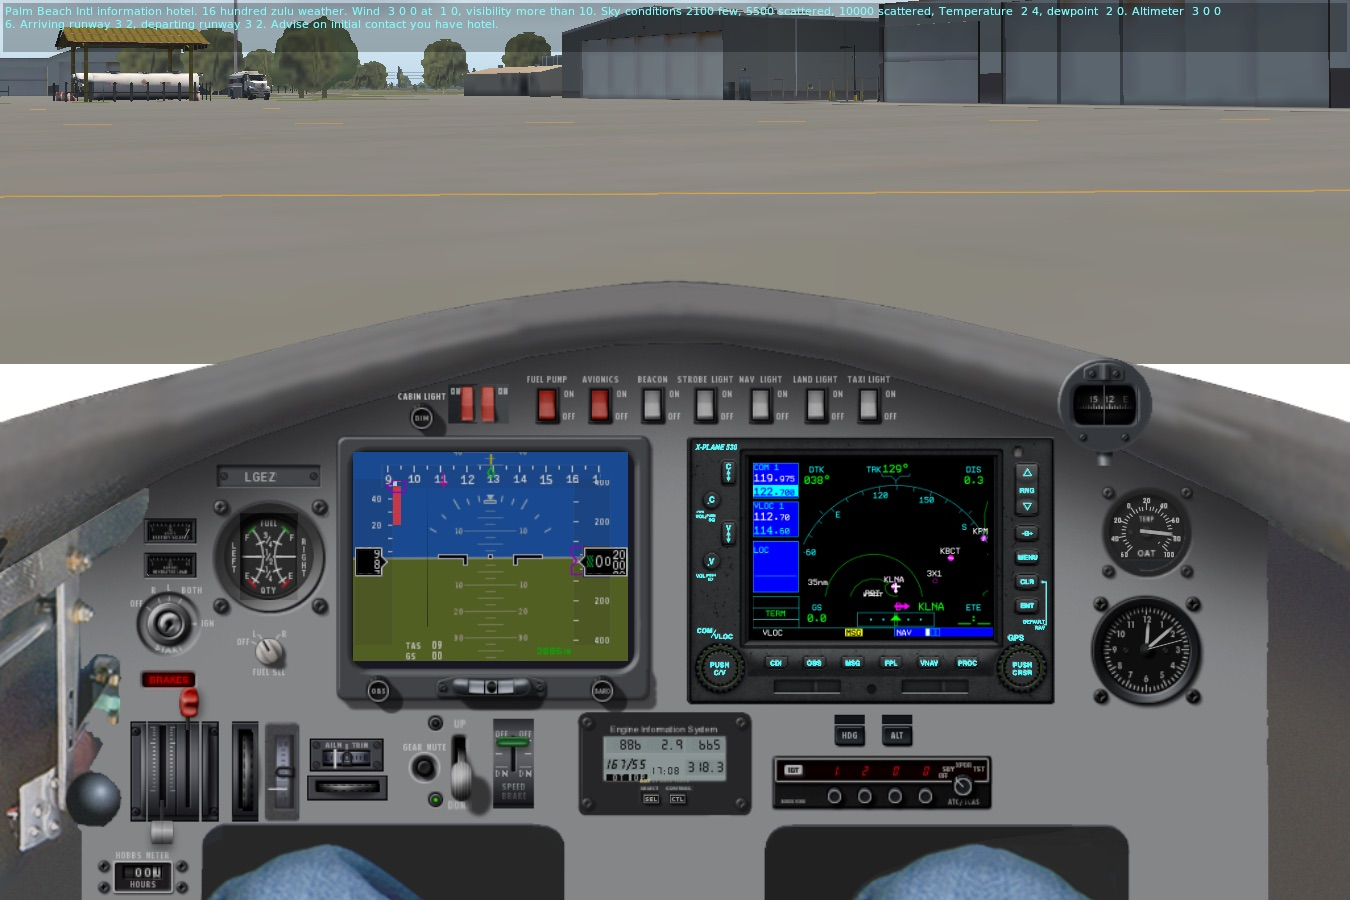 LongEZ N0TEZ Panel for X-Plane 11